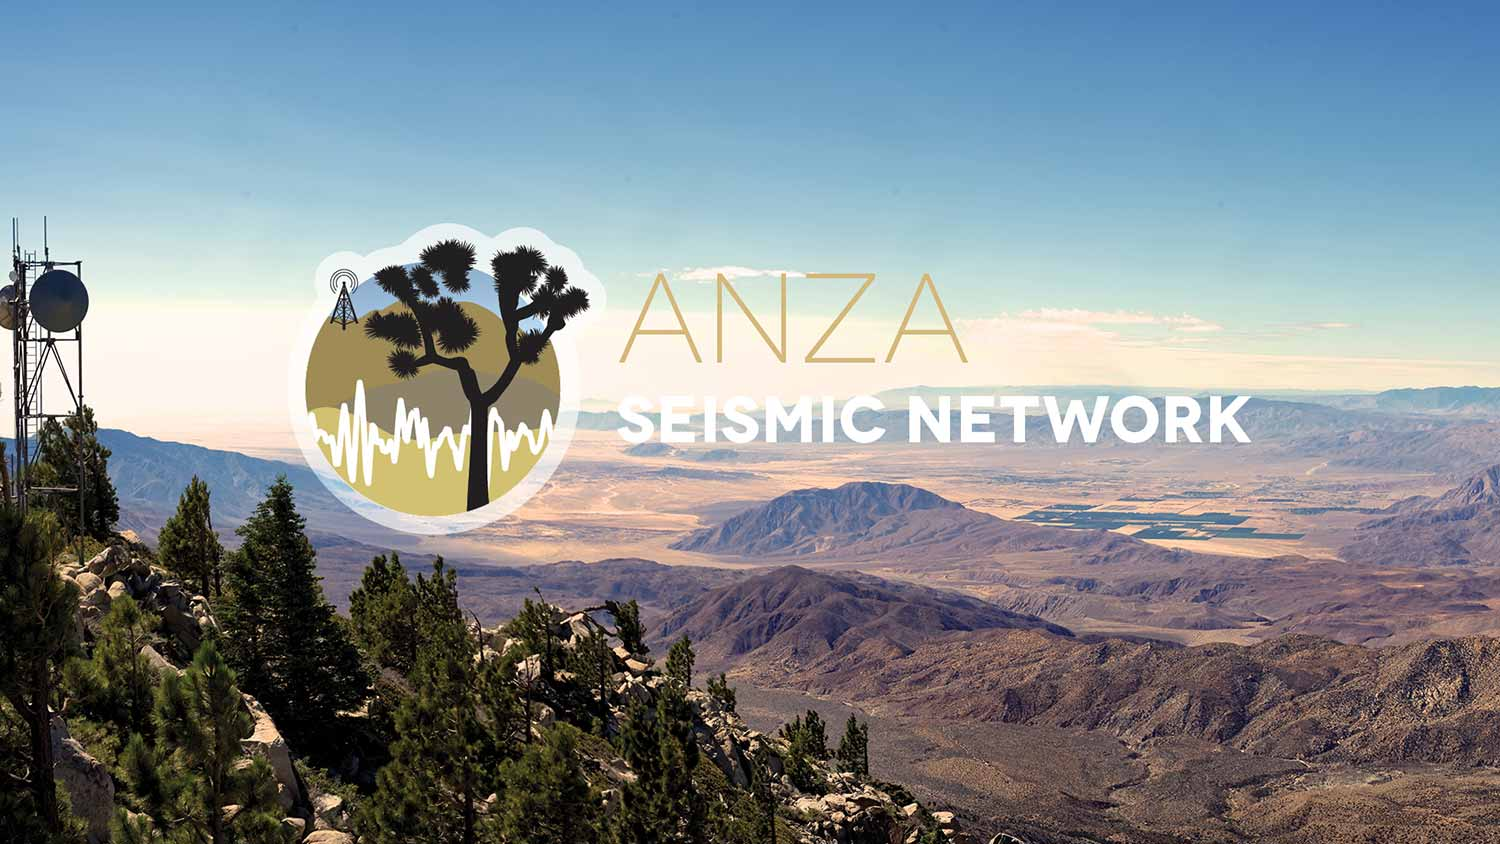 Image: ANZA Seismic Network